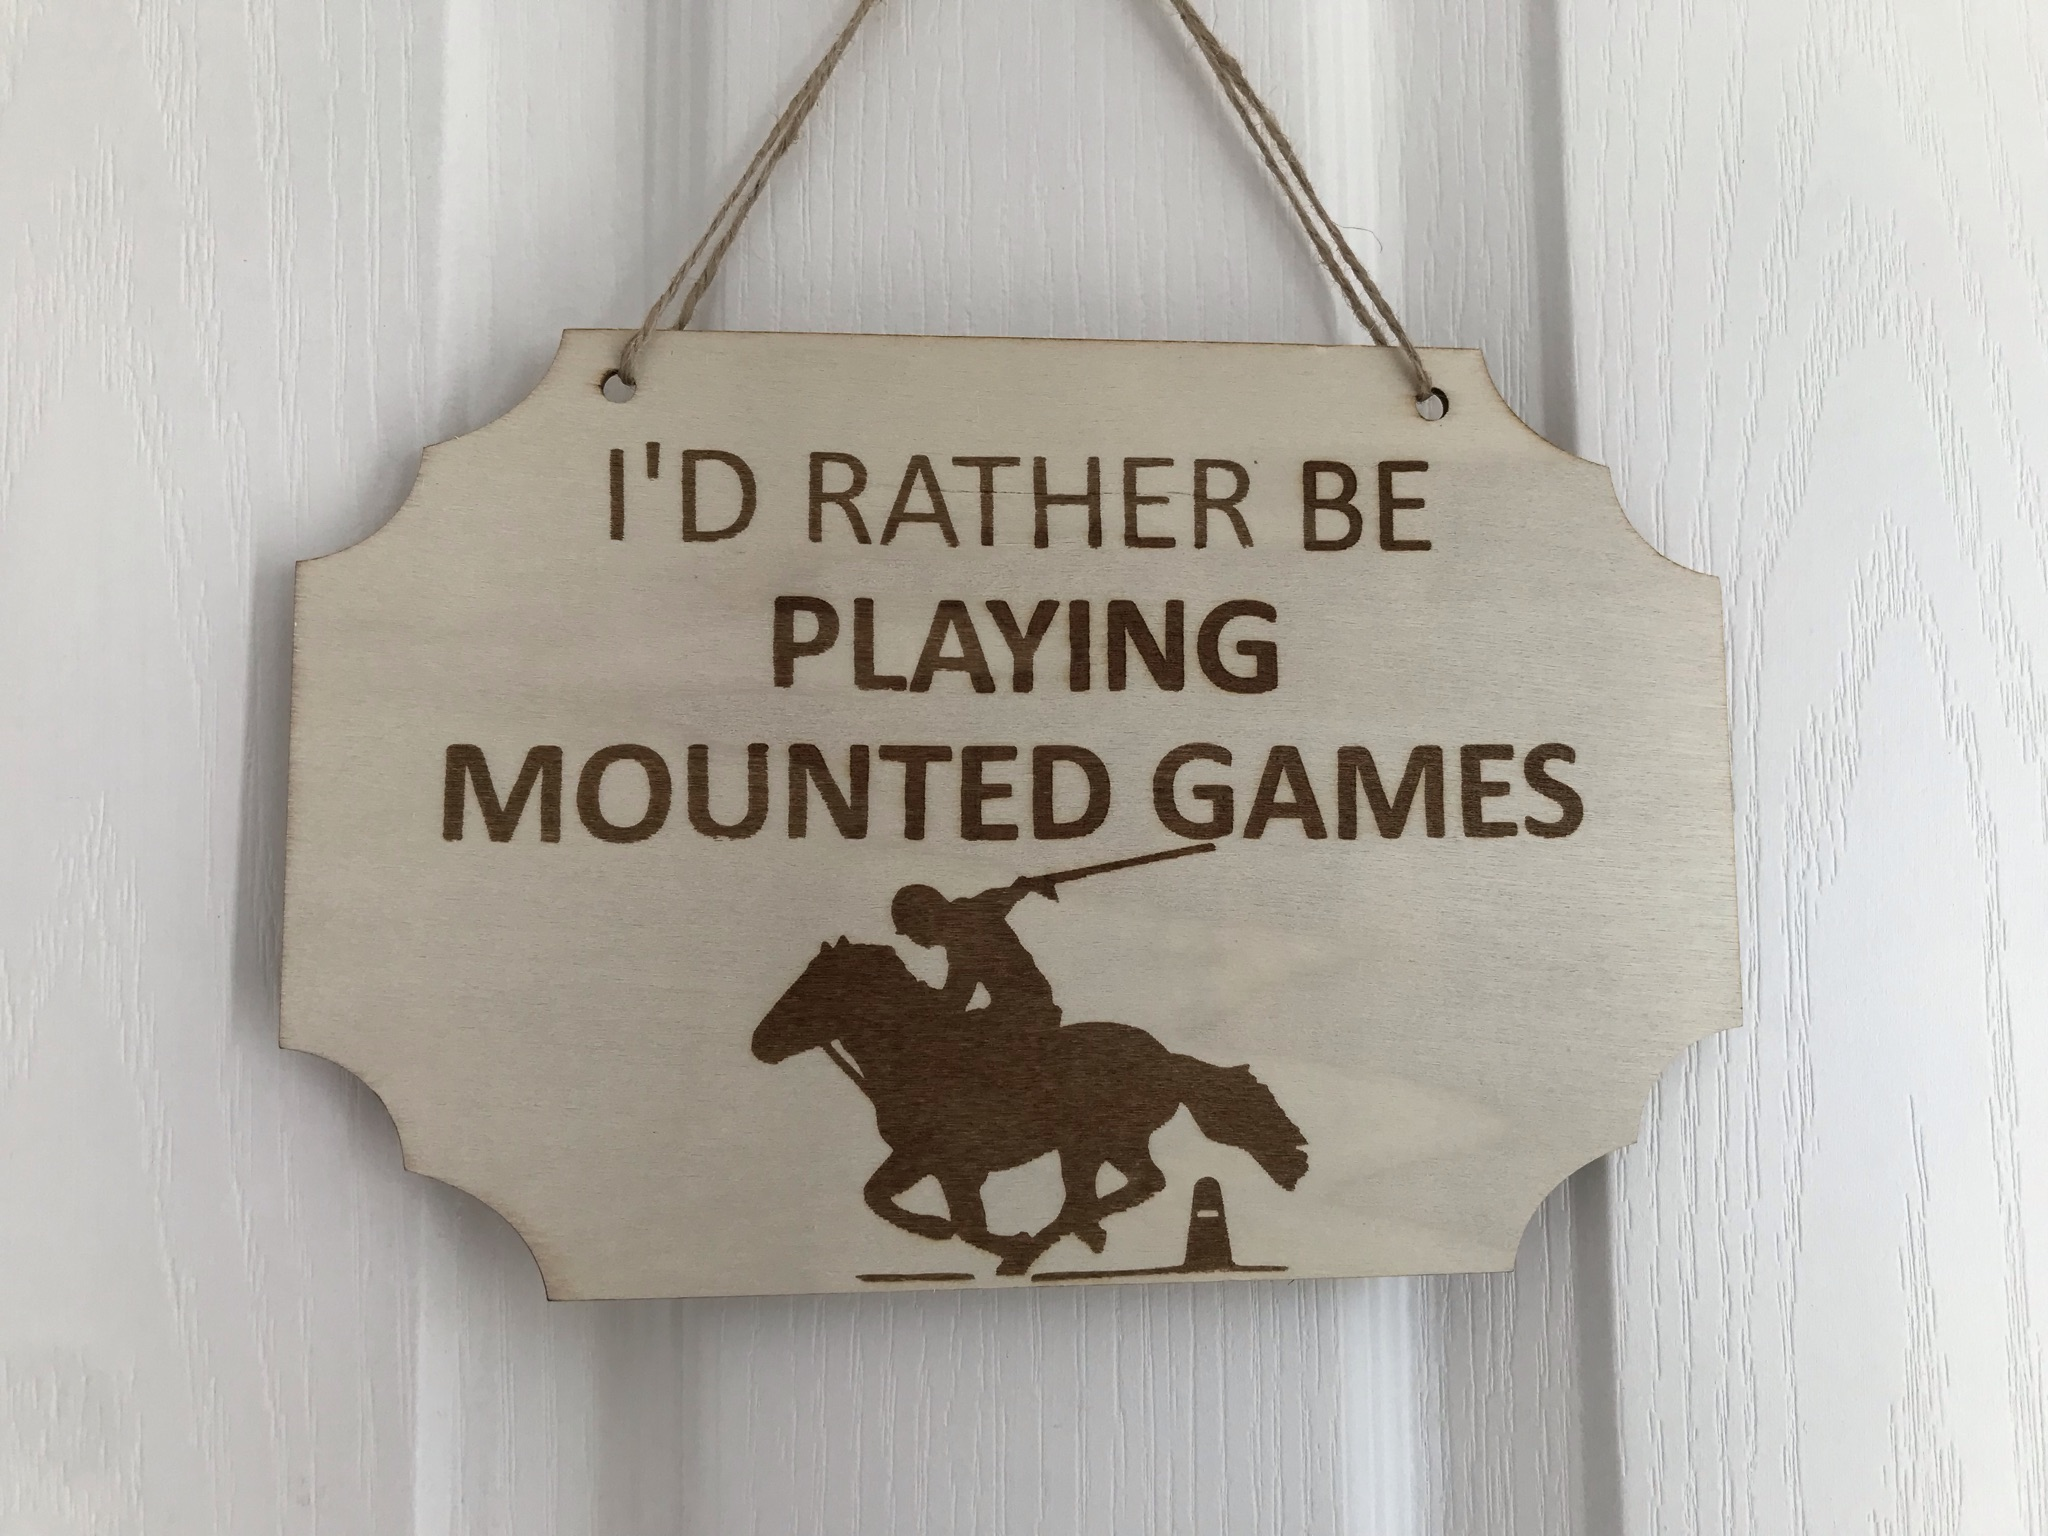 Rather be mounted games cutout sign